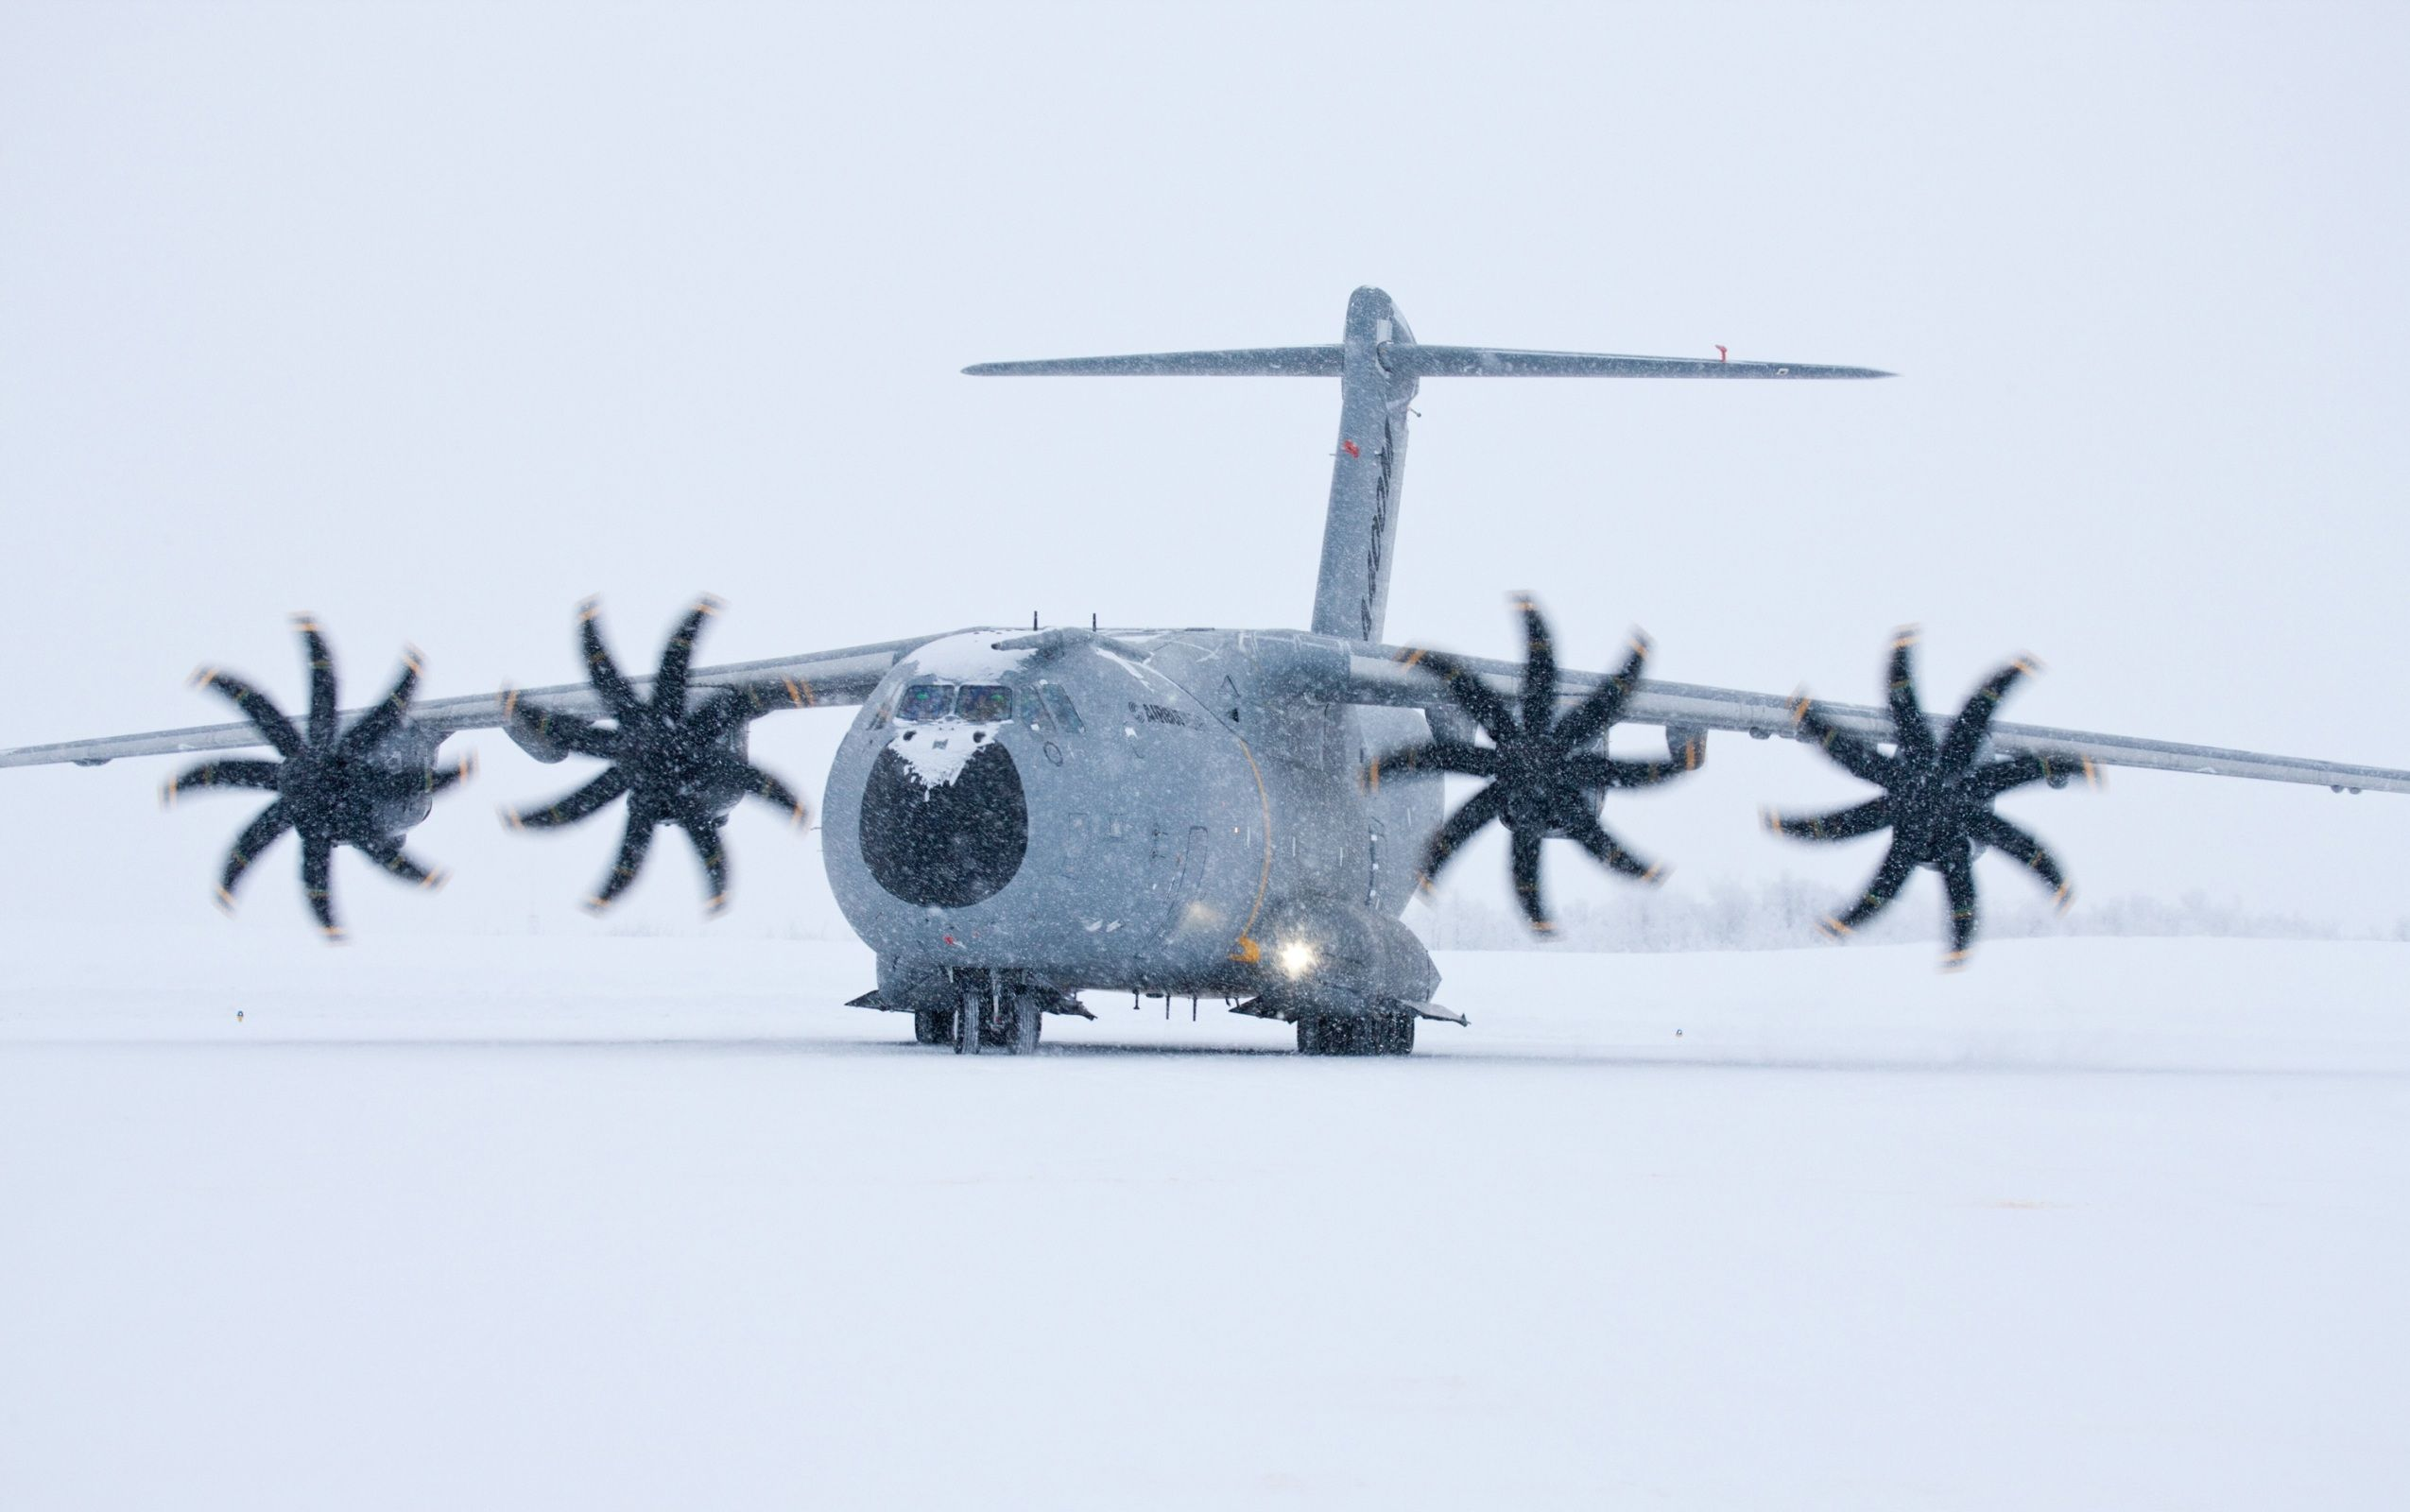 Airbus a400m atlas wallpapers 2550x1600 624141 aircraft airbus a400m atlas wallpapers 2550x1600 624141 voltagebd Image collections